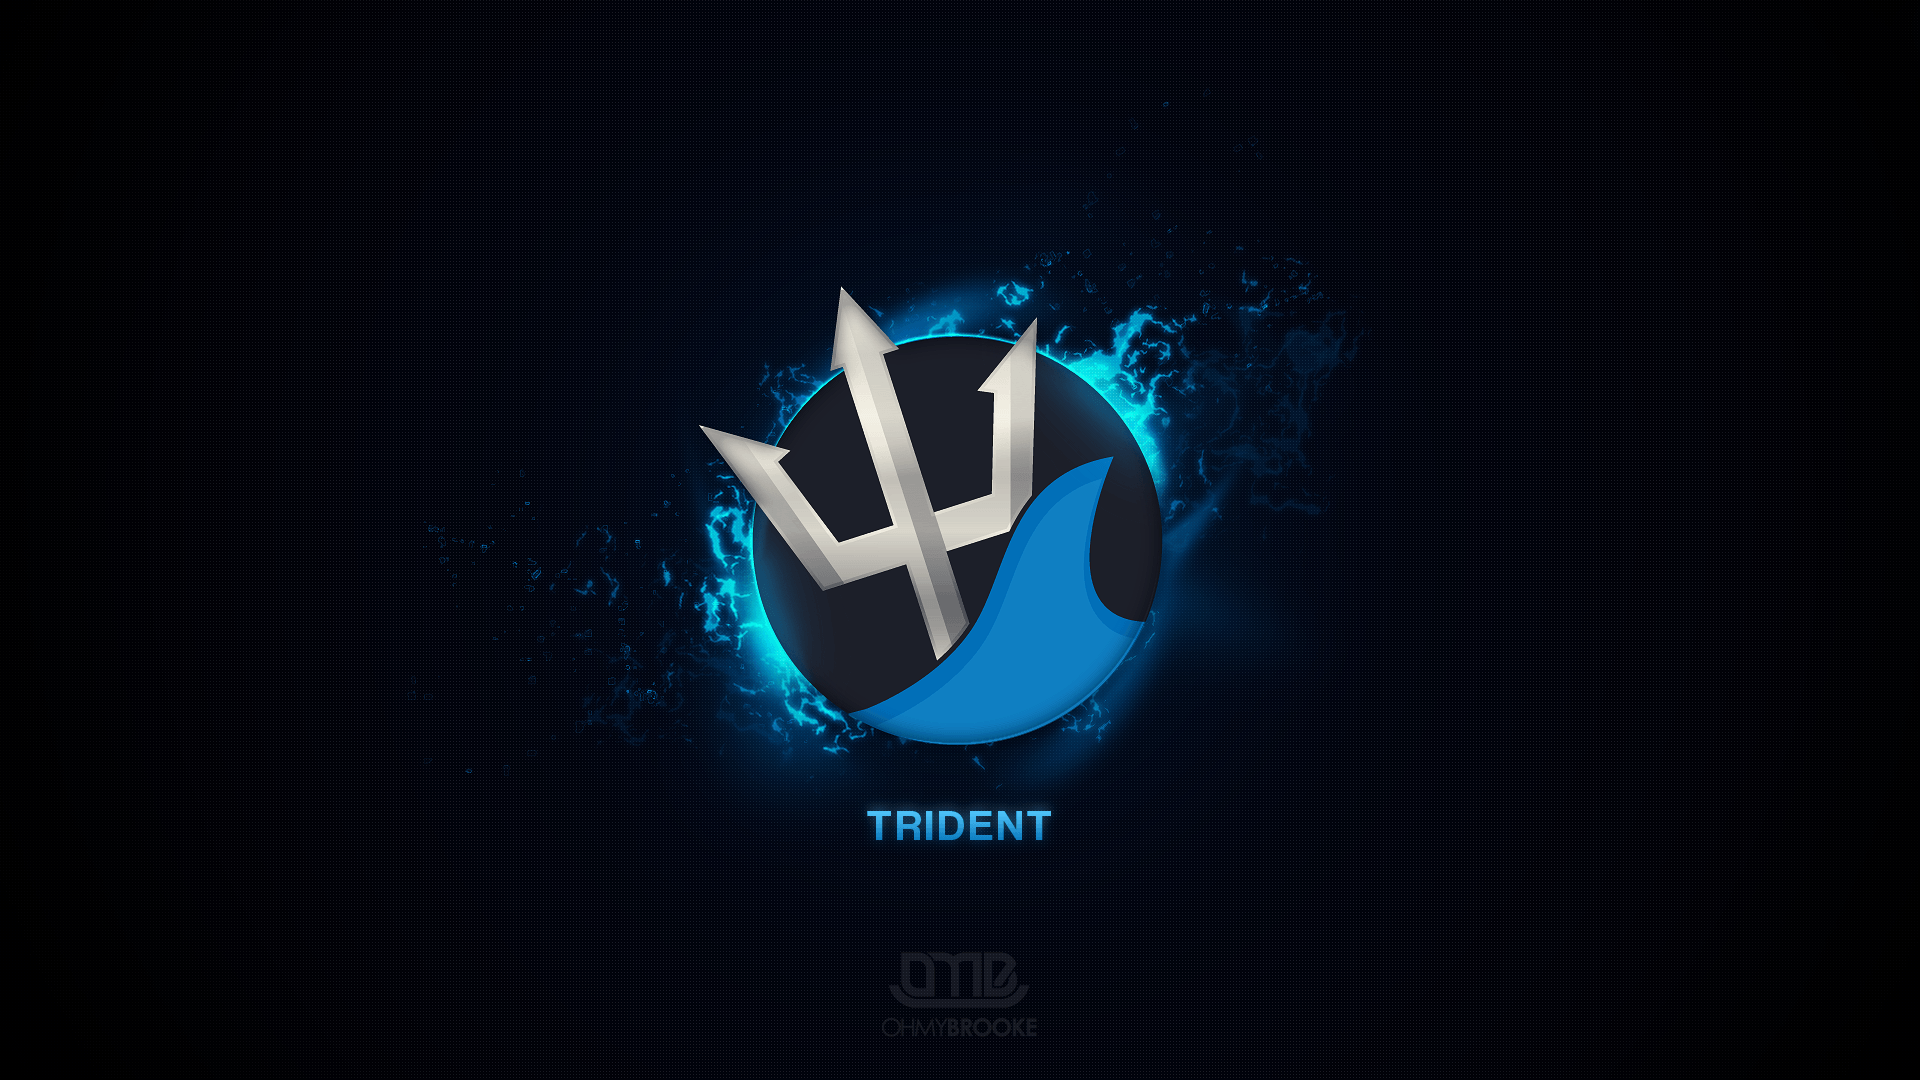 Trident Wallpapers Wallpaper Cave